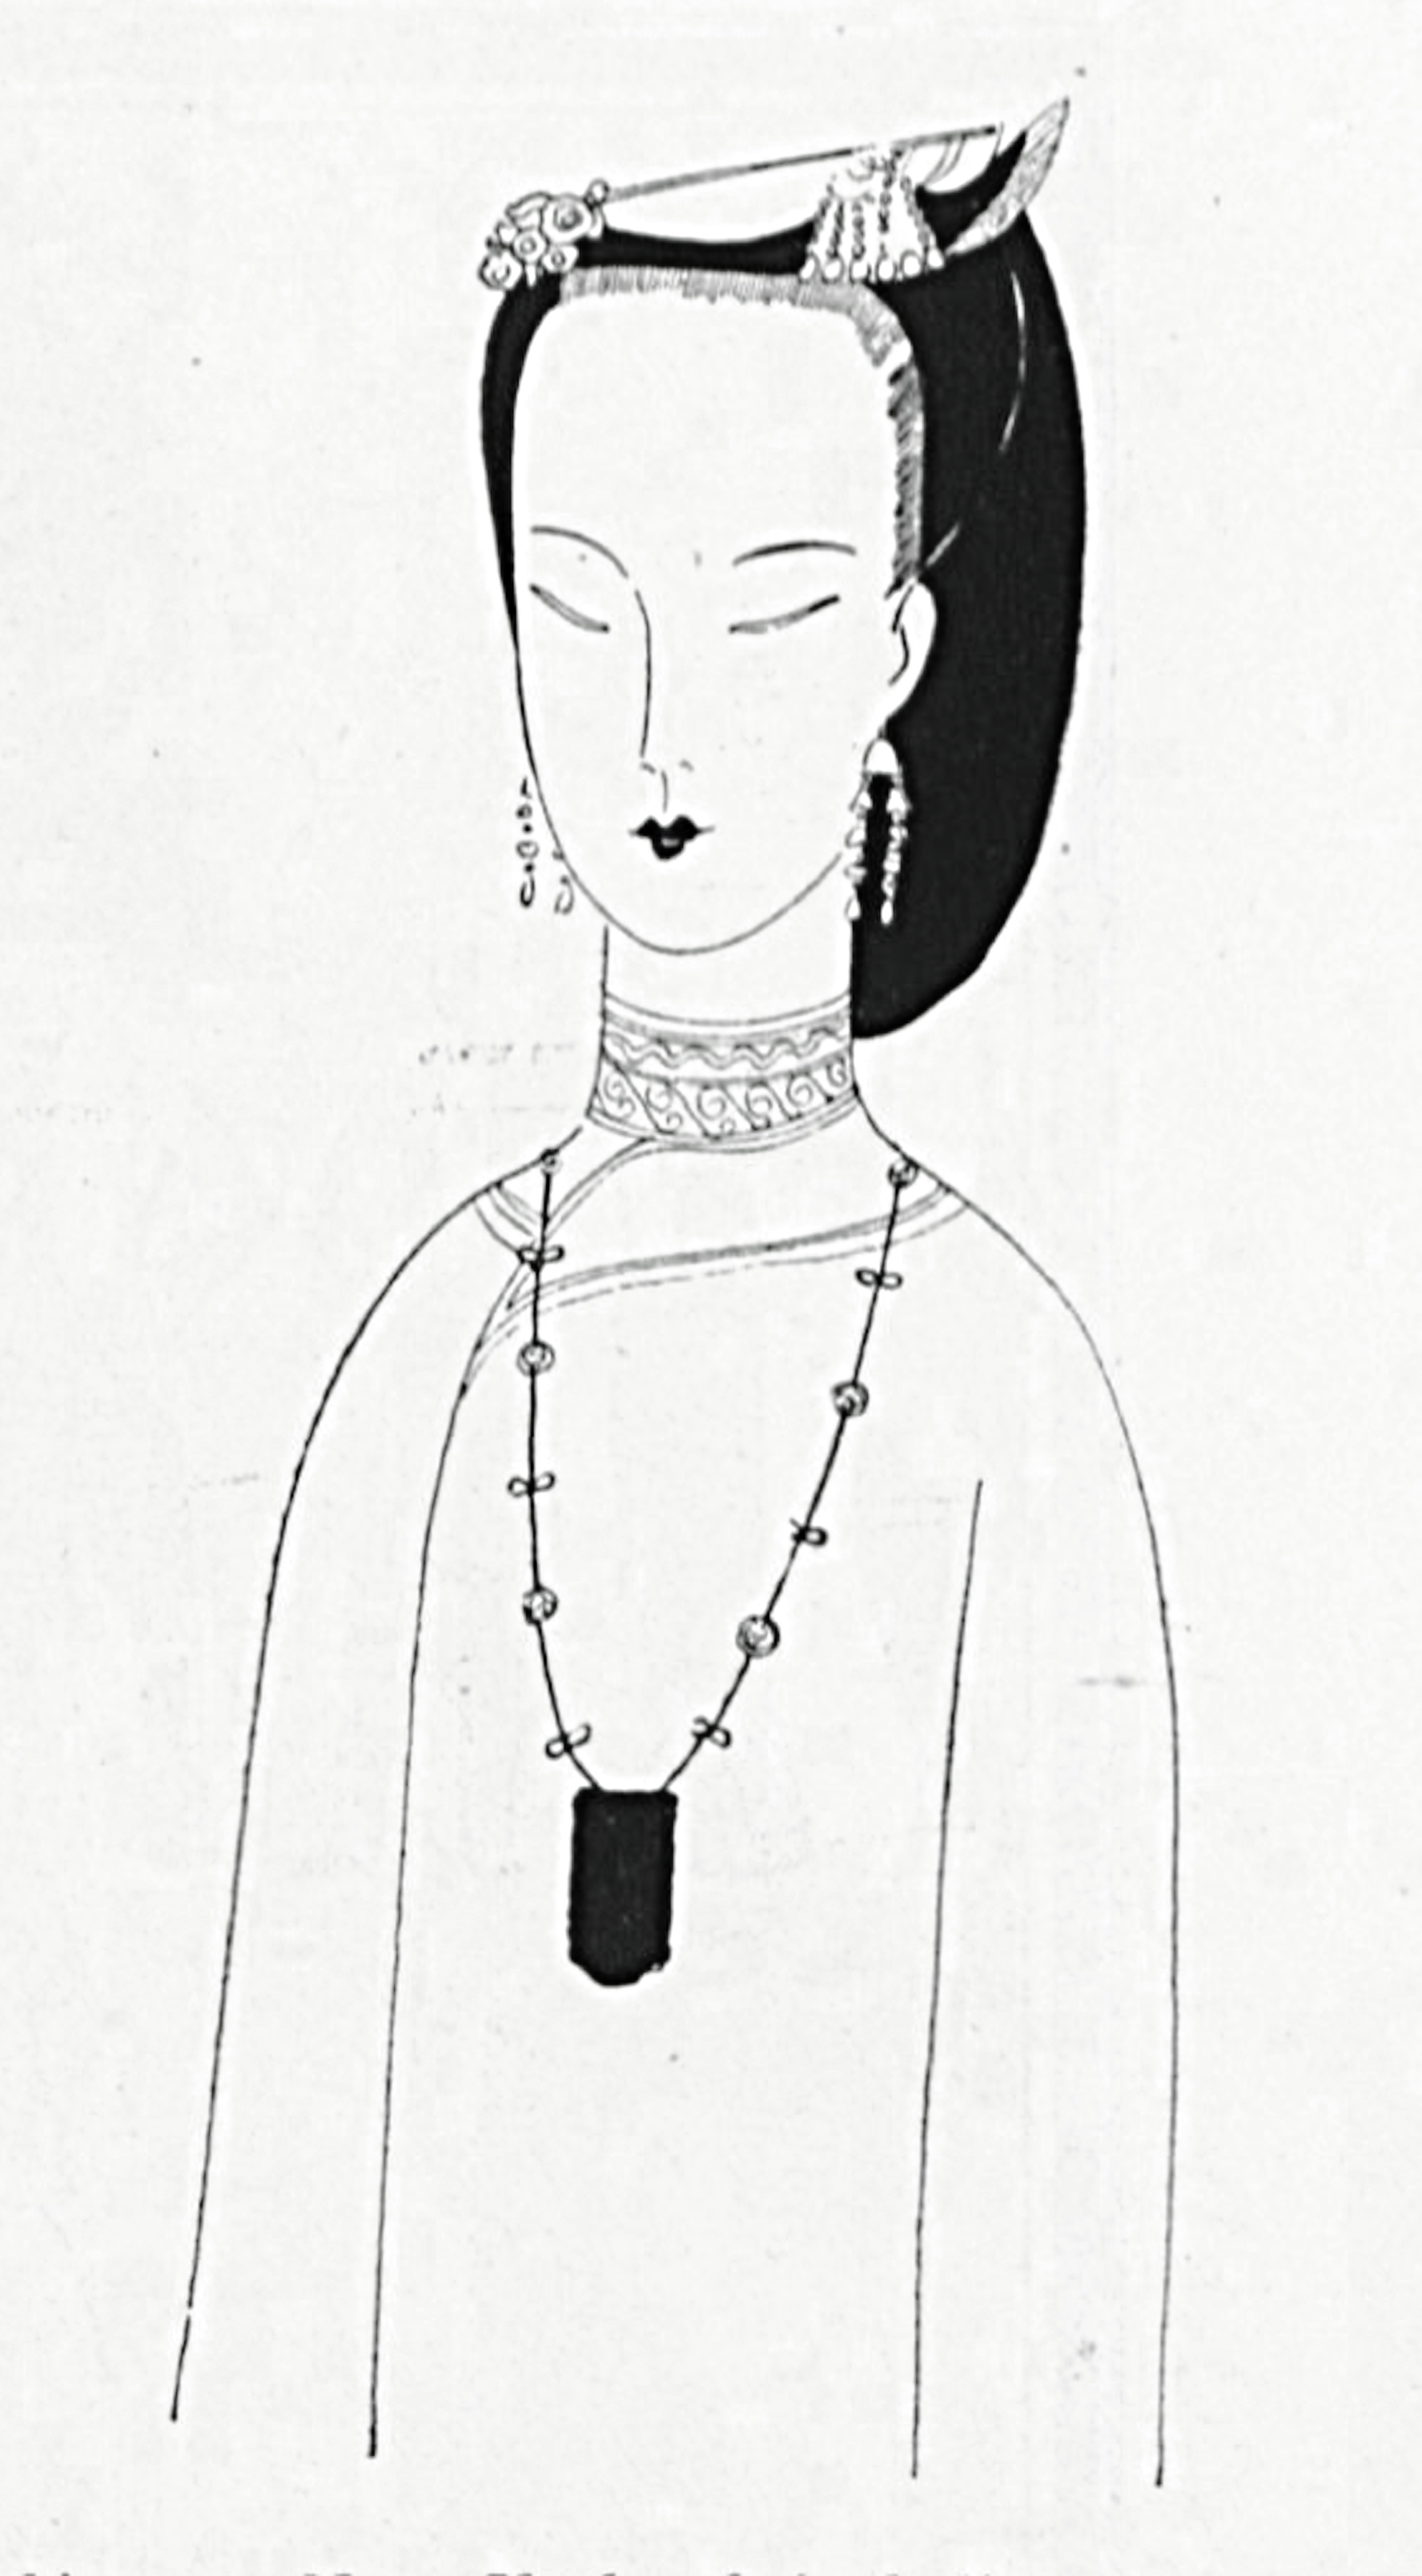 From Costume To Fashion Visions Of Chinese Modernity In Vogue Magazine 1892 1943